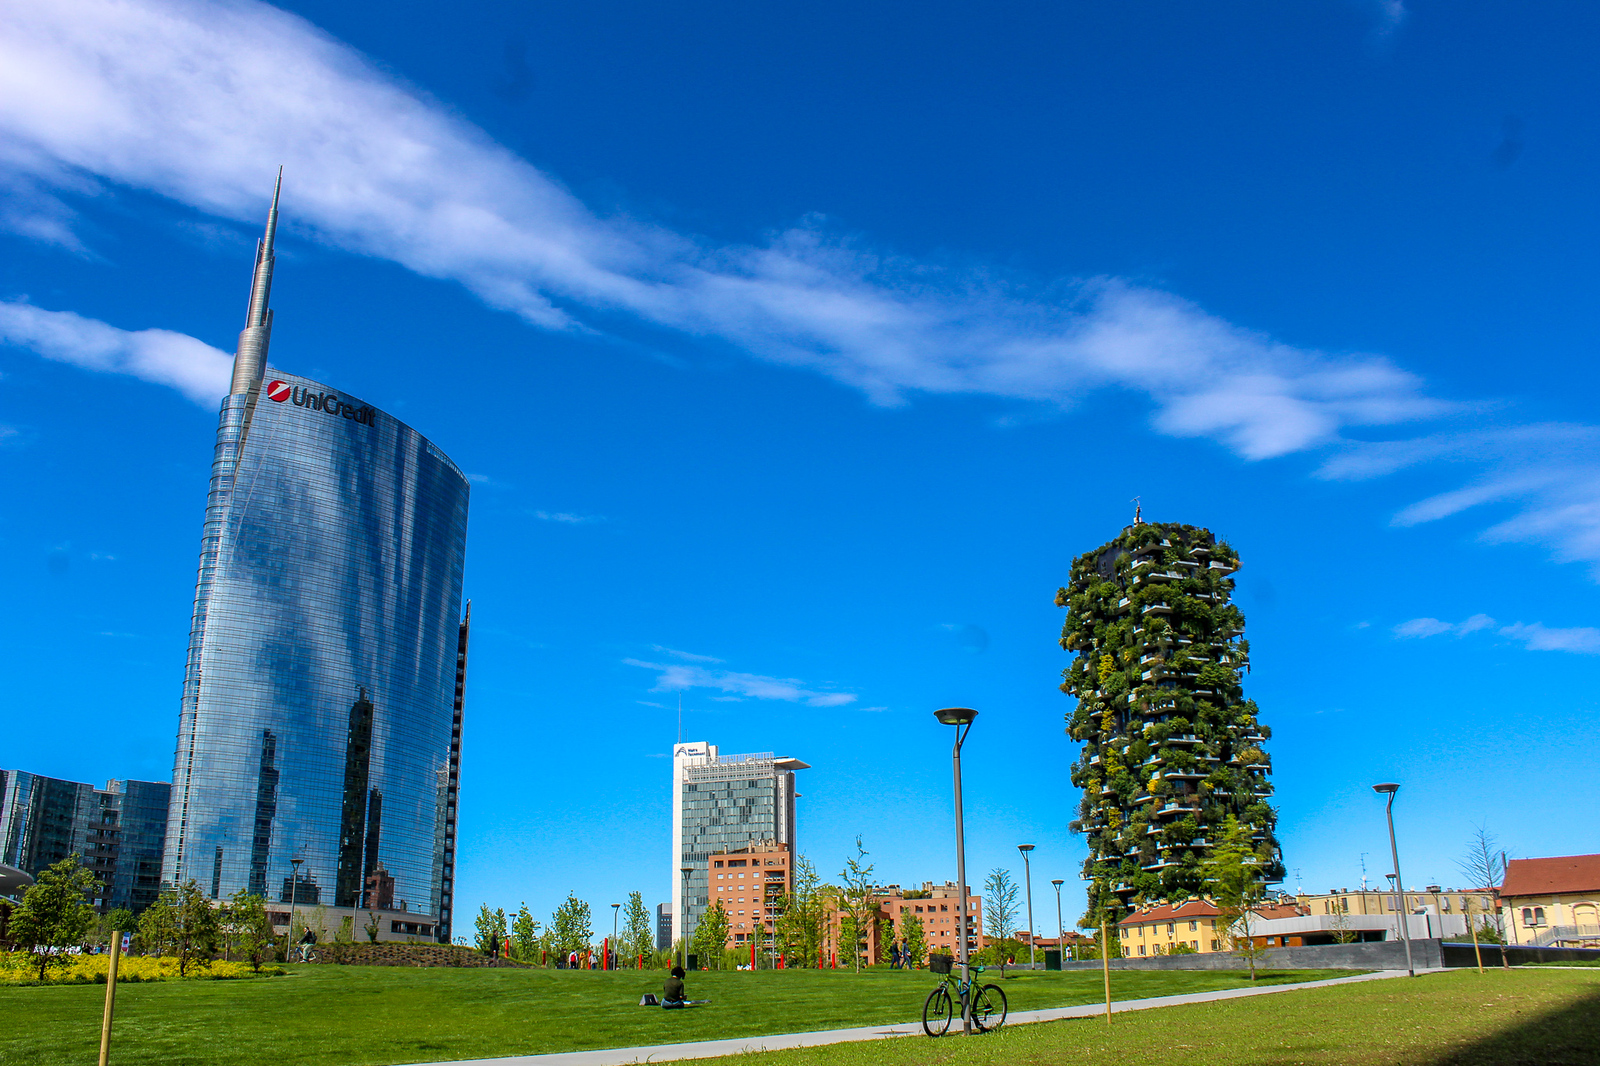 milan where to go simply explore the green spaces